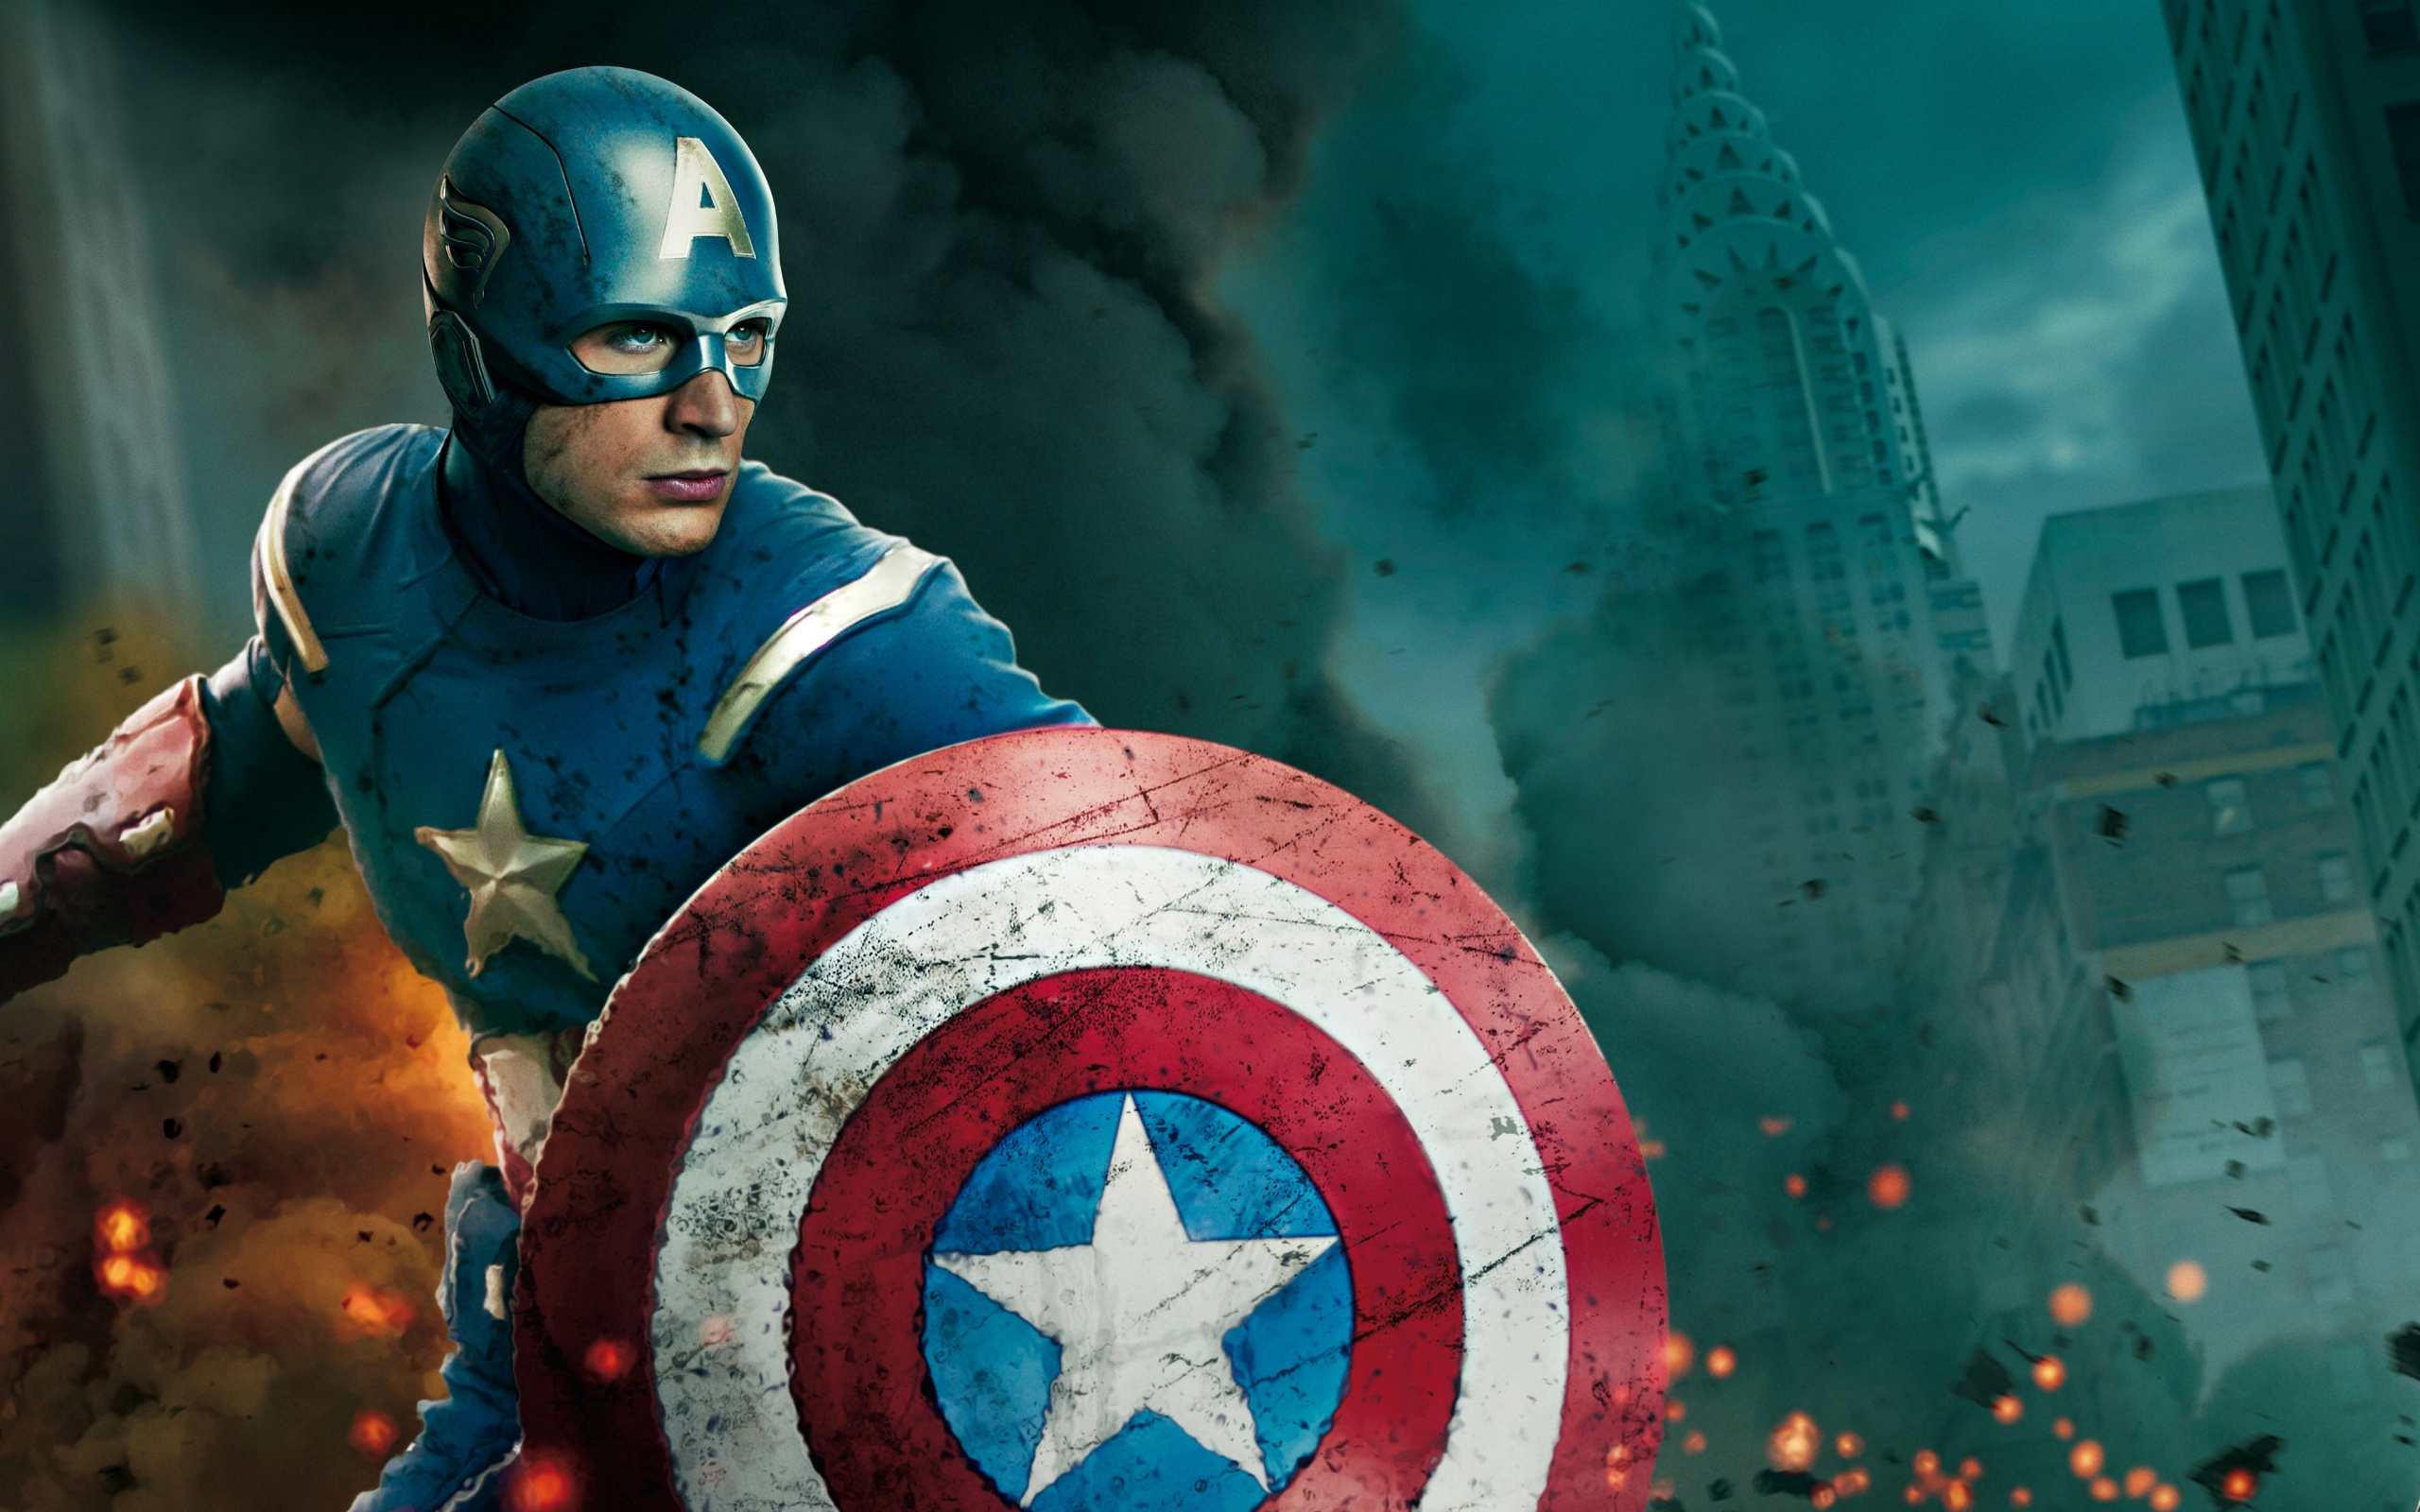 Download Filem 2012 The Avengers Movie 2012 In Captain America Wallpapers 2560x1600 x